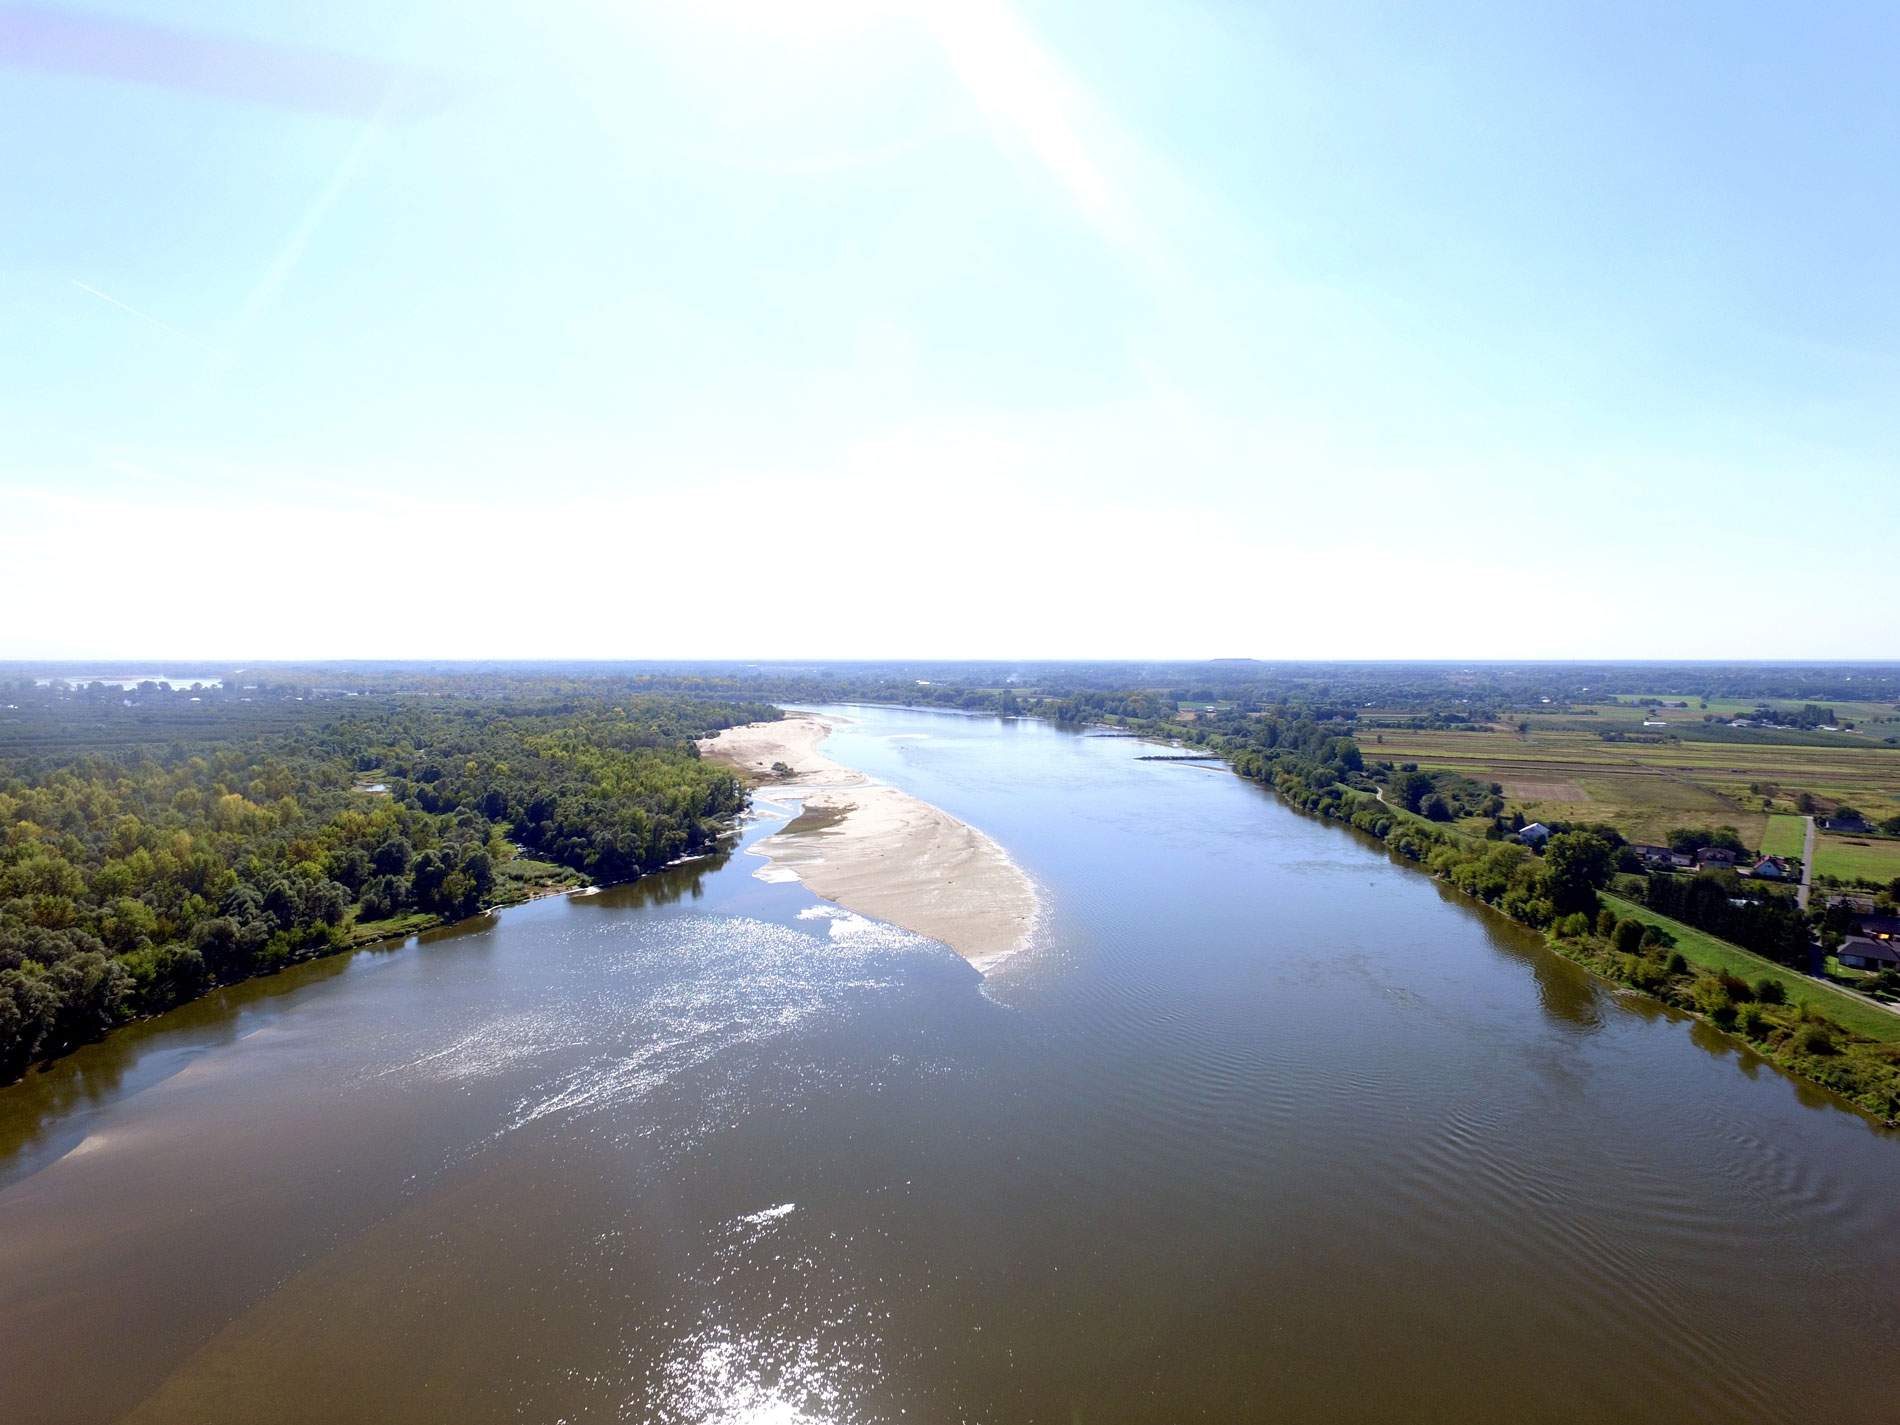 Vistula-below-Warsaw-at-Karczew-village_DJI_0071_2